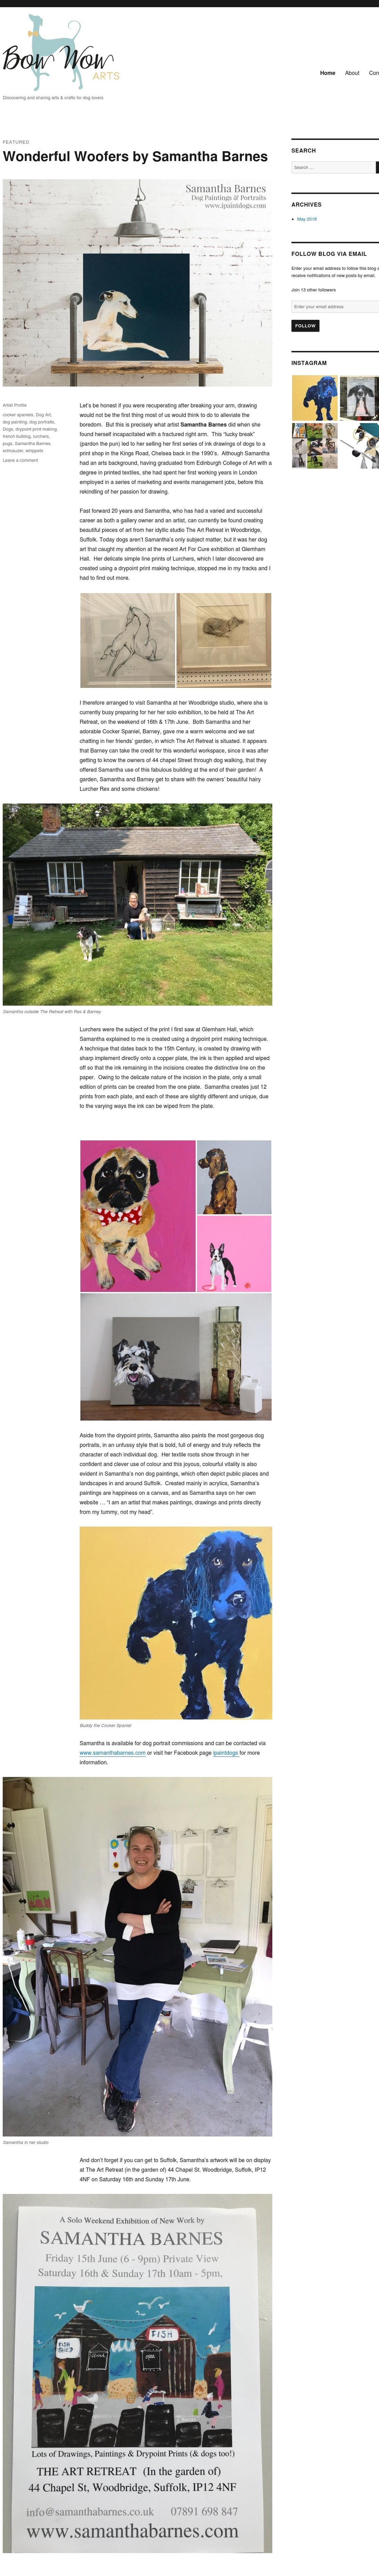 Bow Wow Arts Blog, June 2018 Samantha Barnes Artist ipaintdogs